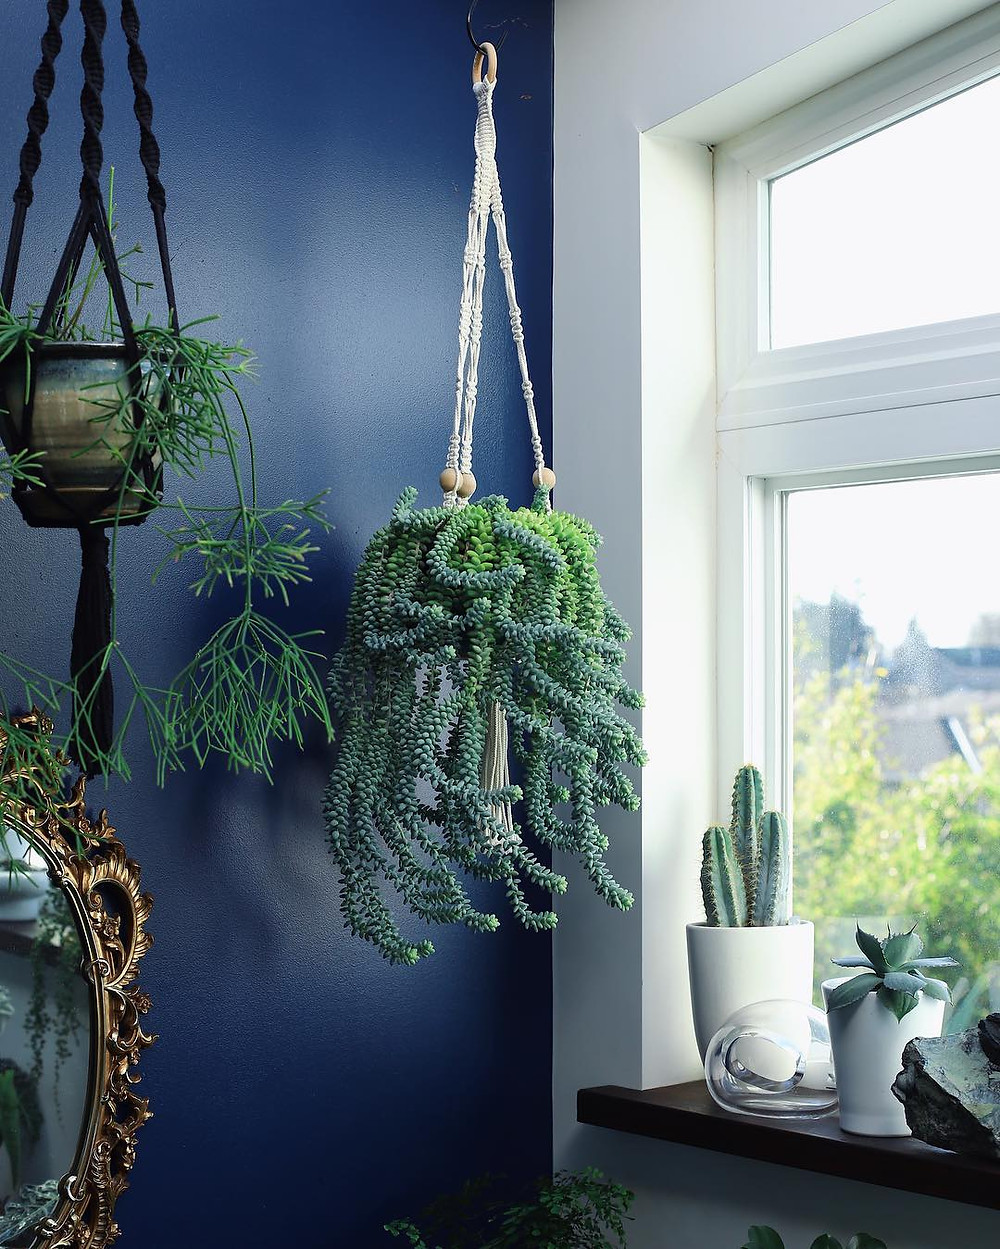 Burro's Tail Hanging Plants Trailing Houseplants